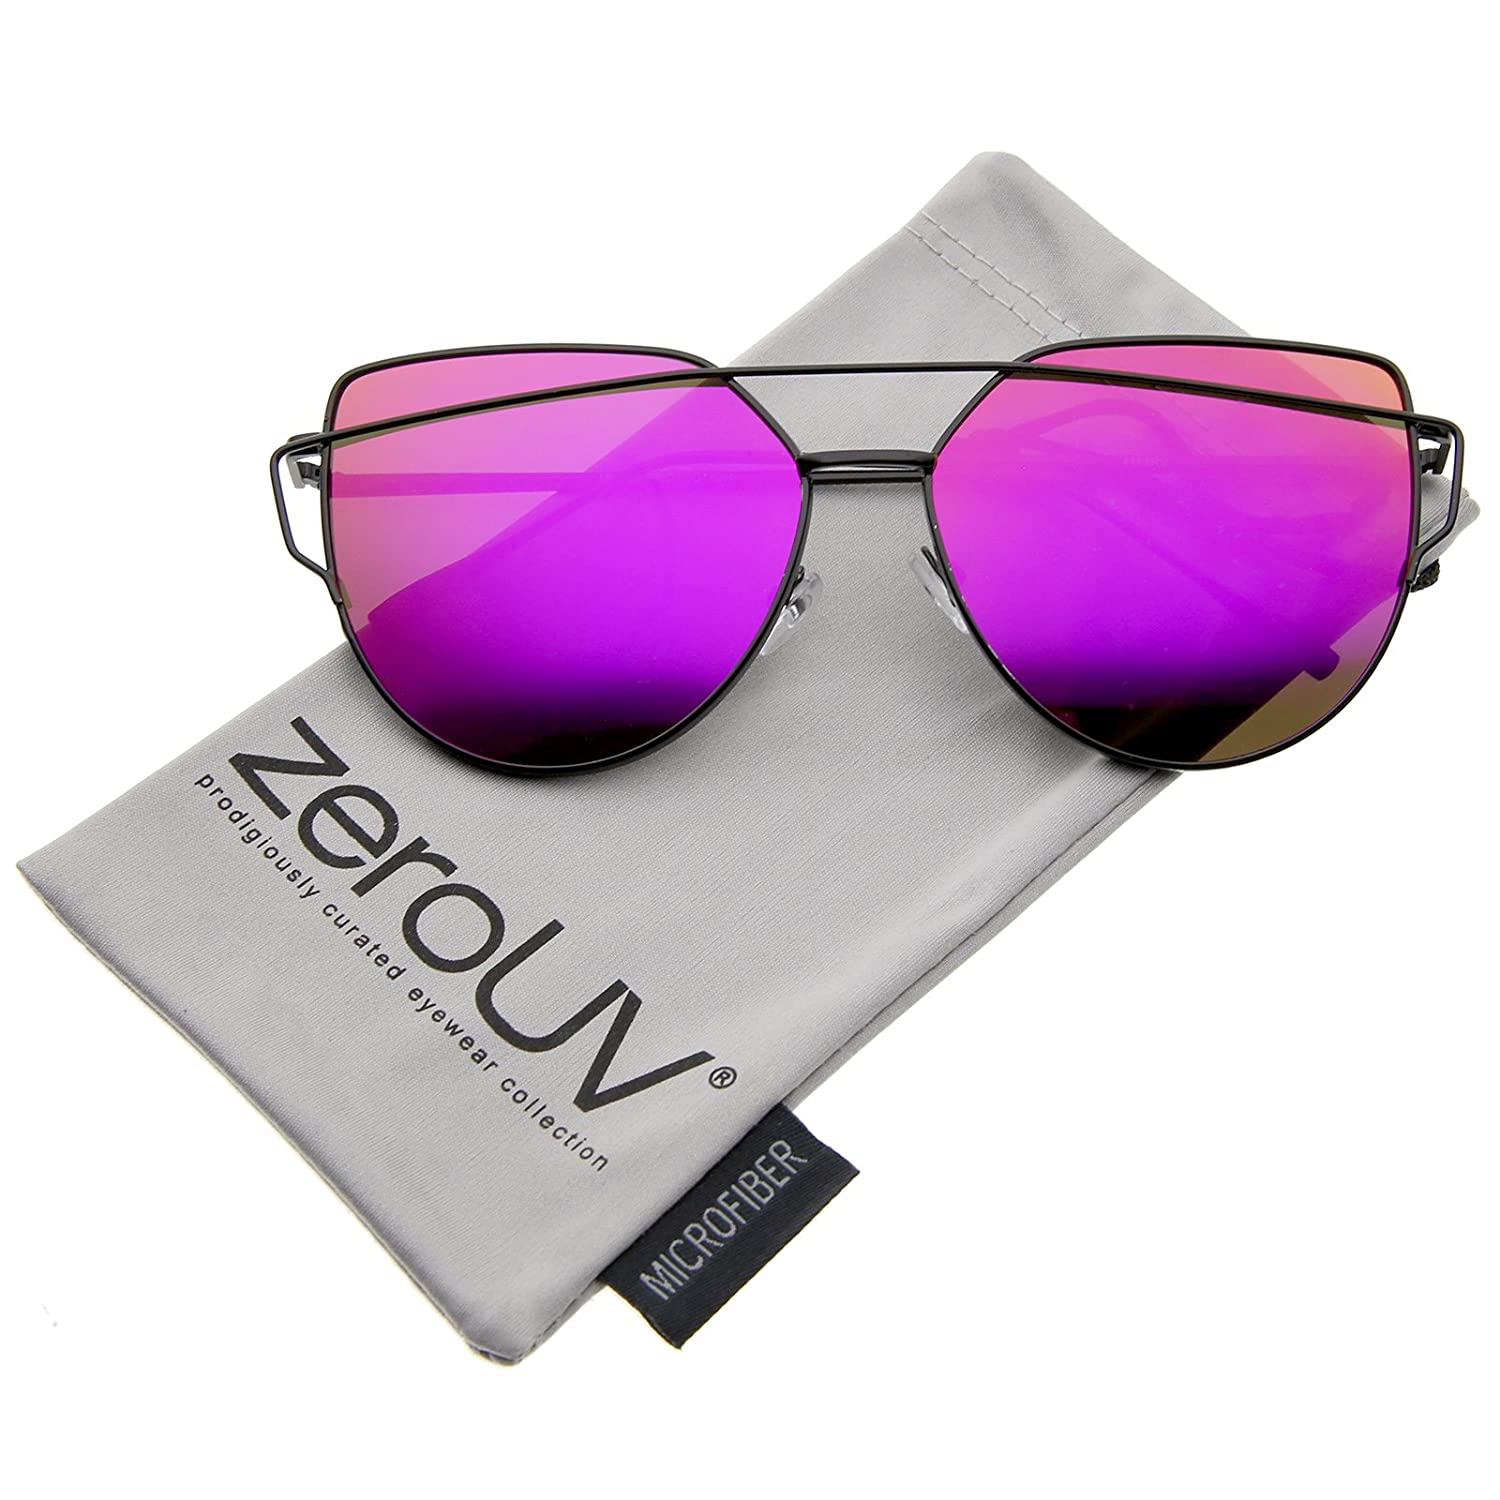 40b84e9d65a Amazon.com  Oversize Metal Frame Thin Temple Color Mirror Flat Lens Aviator  Sunglasses 62mm (Black Magenta Mirror)  Clothing